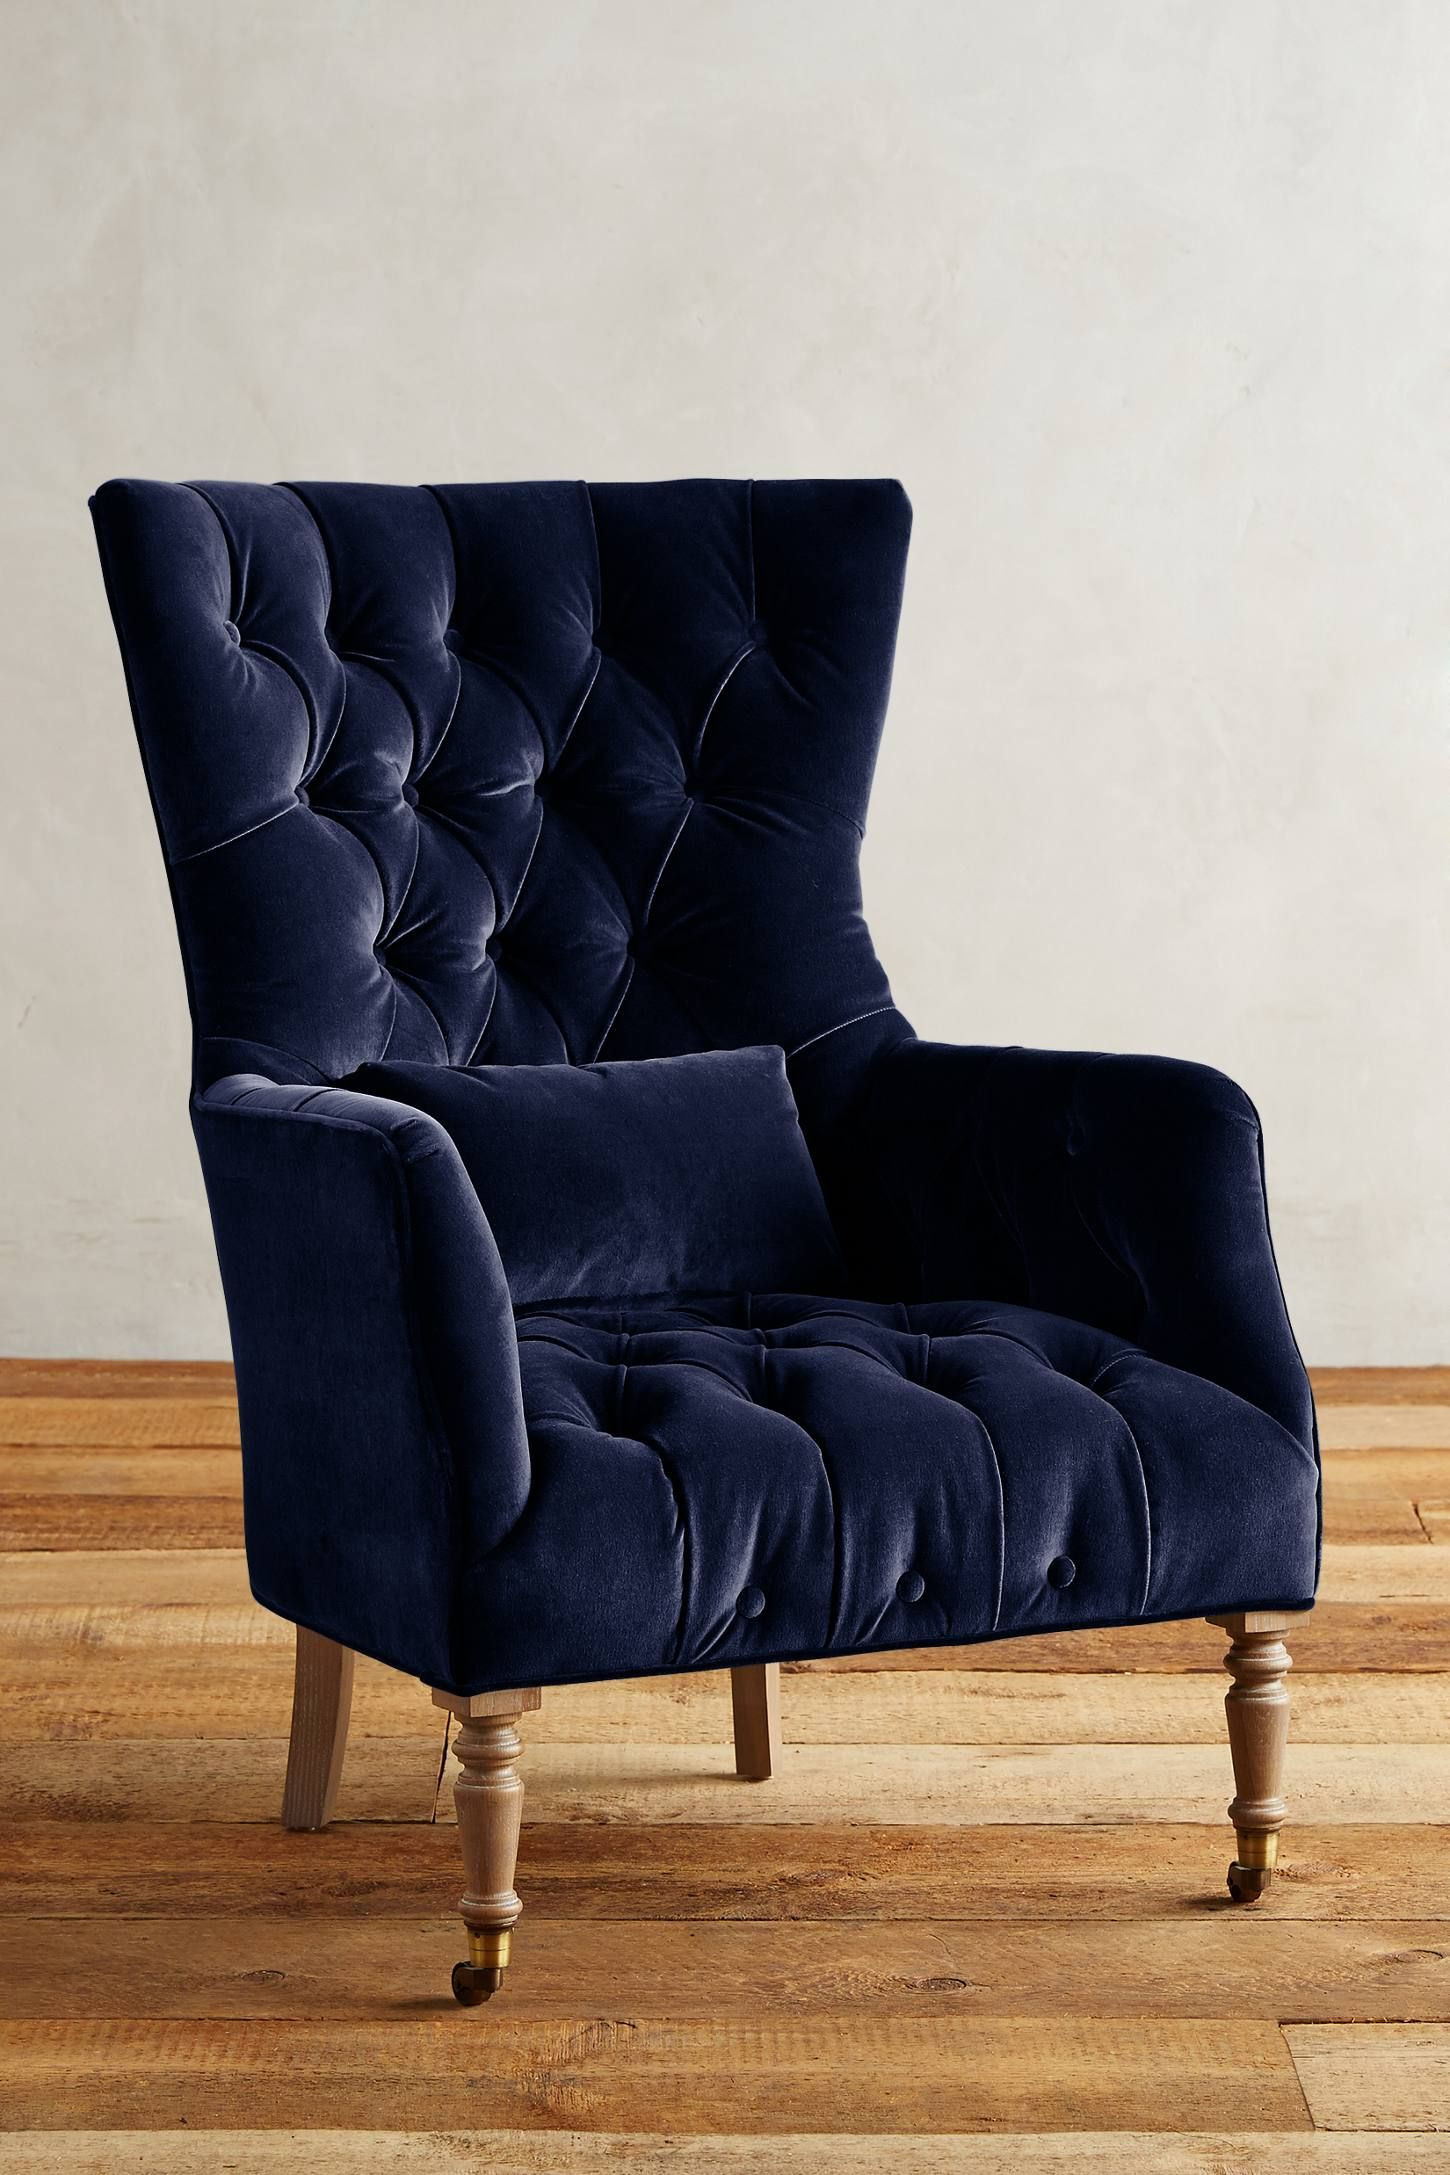 Velvet Julienne Chair Velvet furniture, Furniture, Home